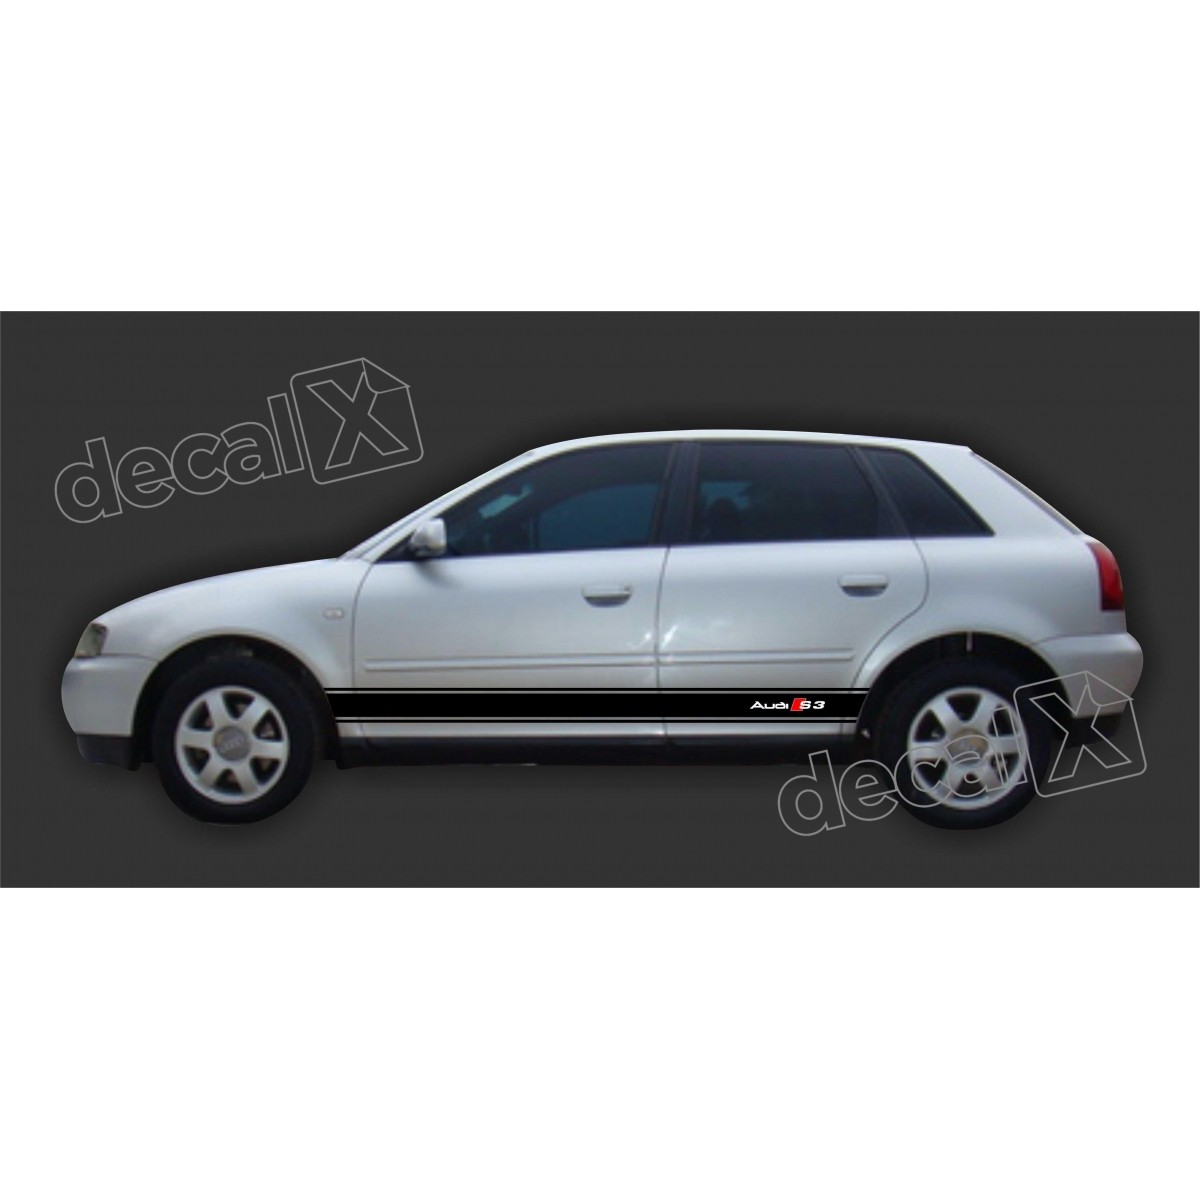 Adesivo Audi A3 Lateral A38